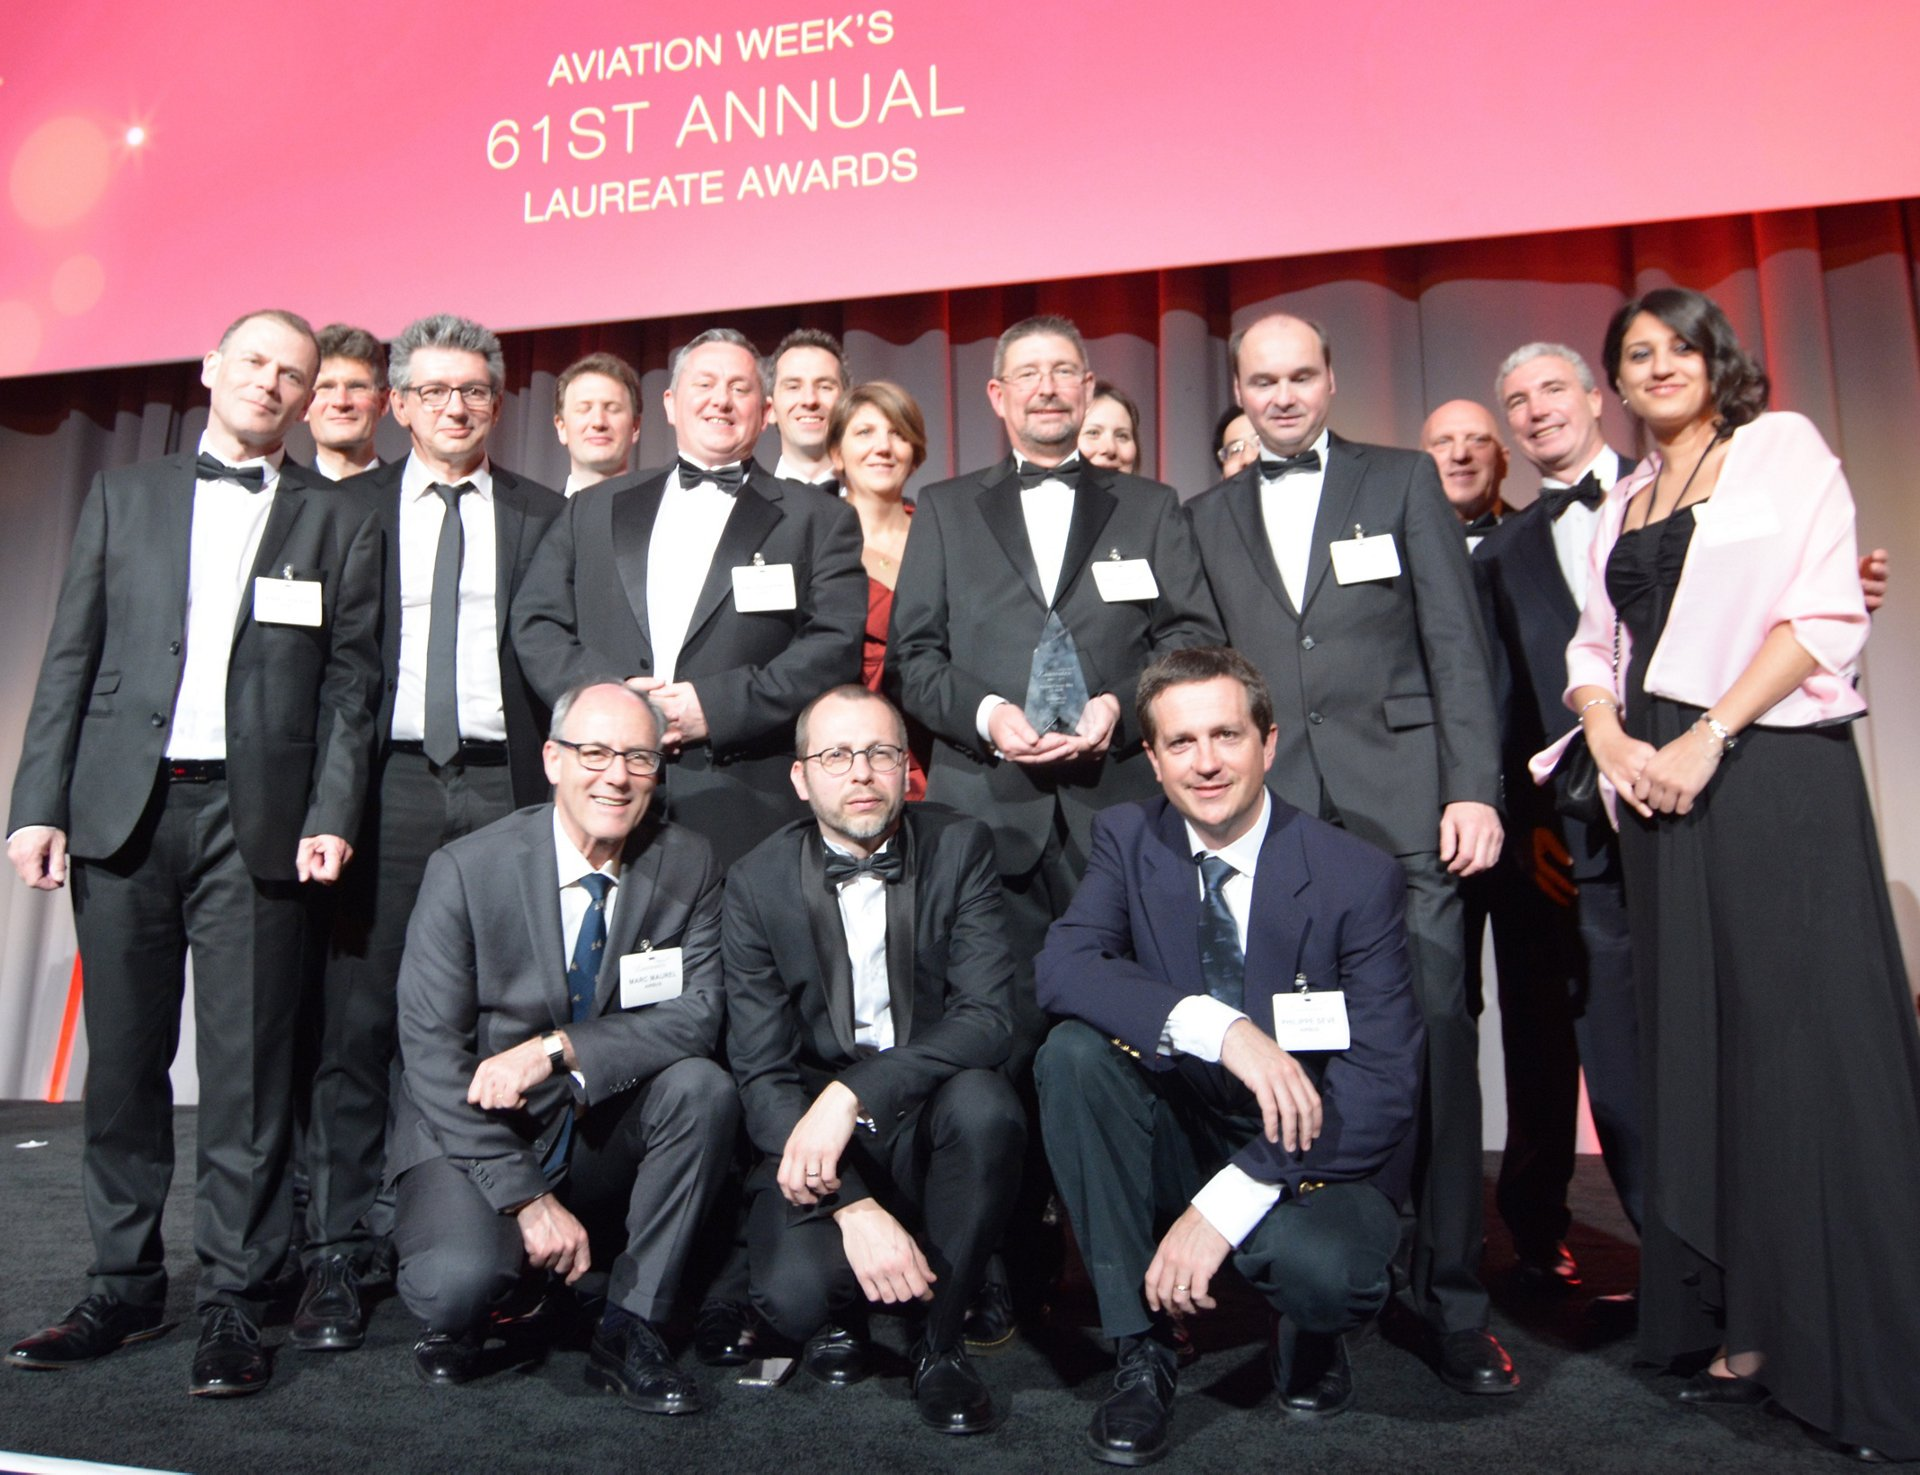 Aviation Week's 61st Annual Laureate Awards